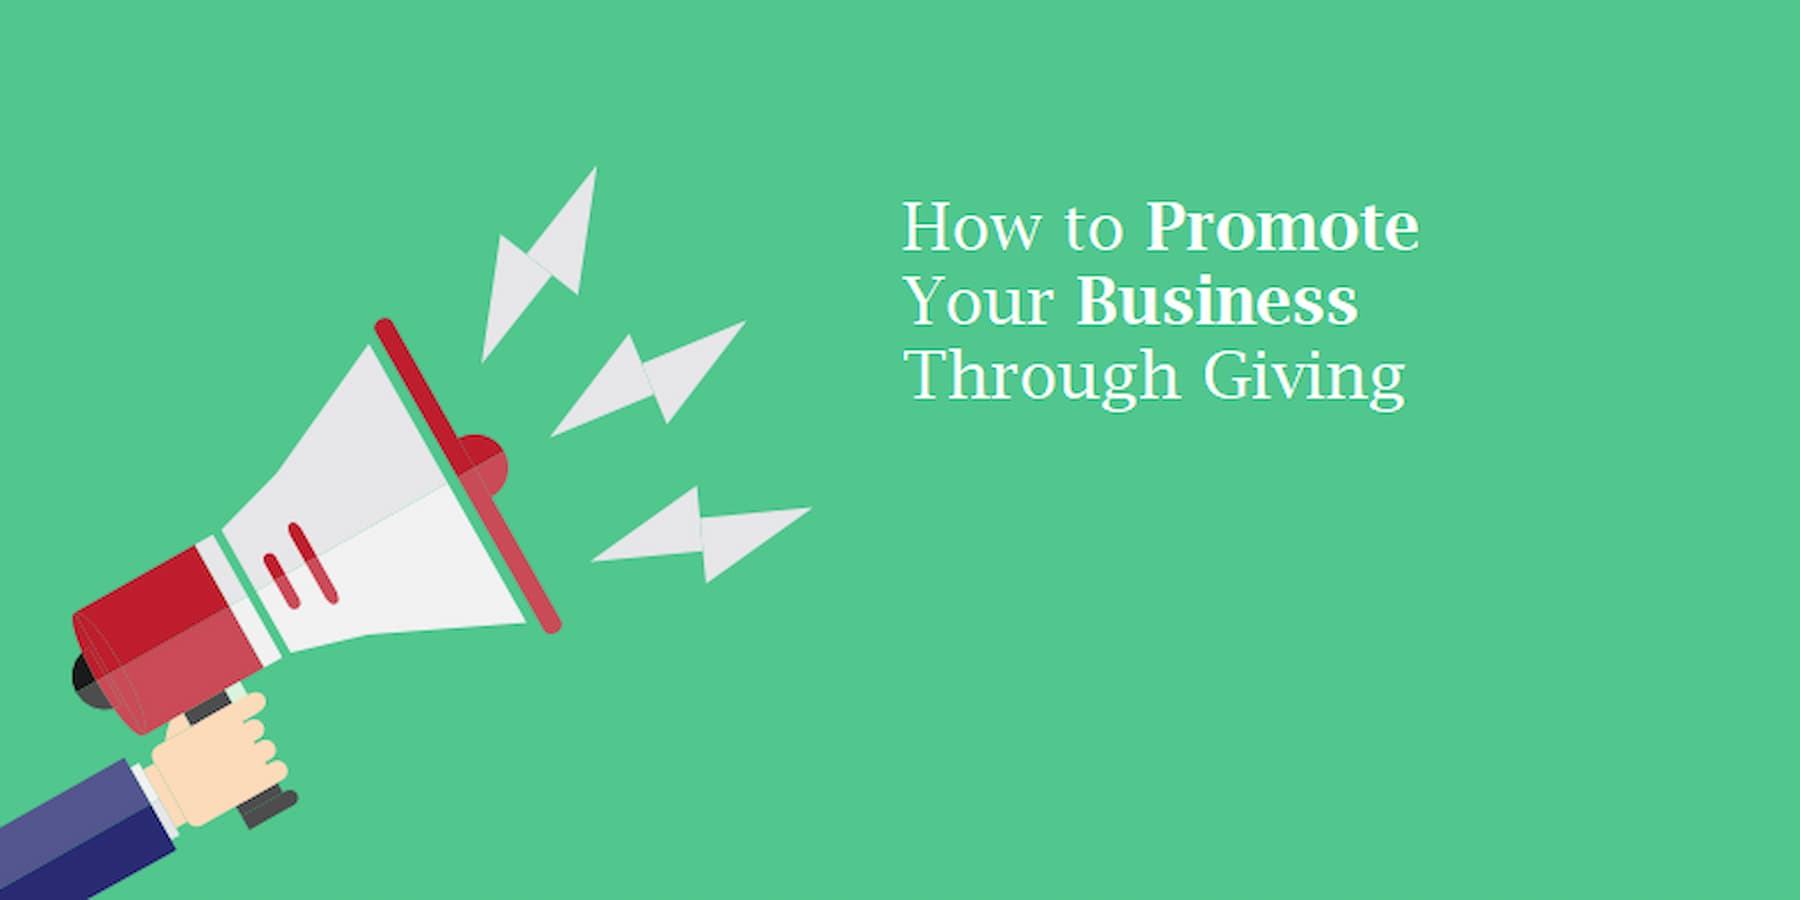 promoting your business through giving